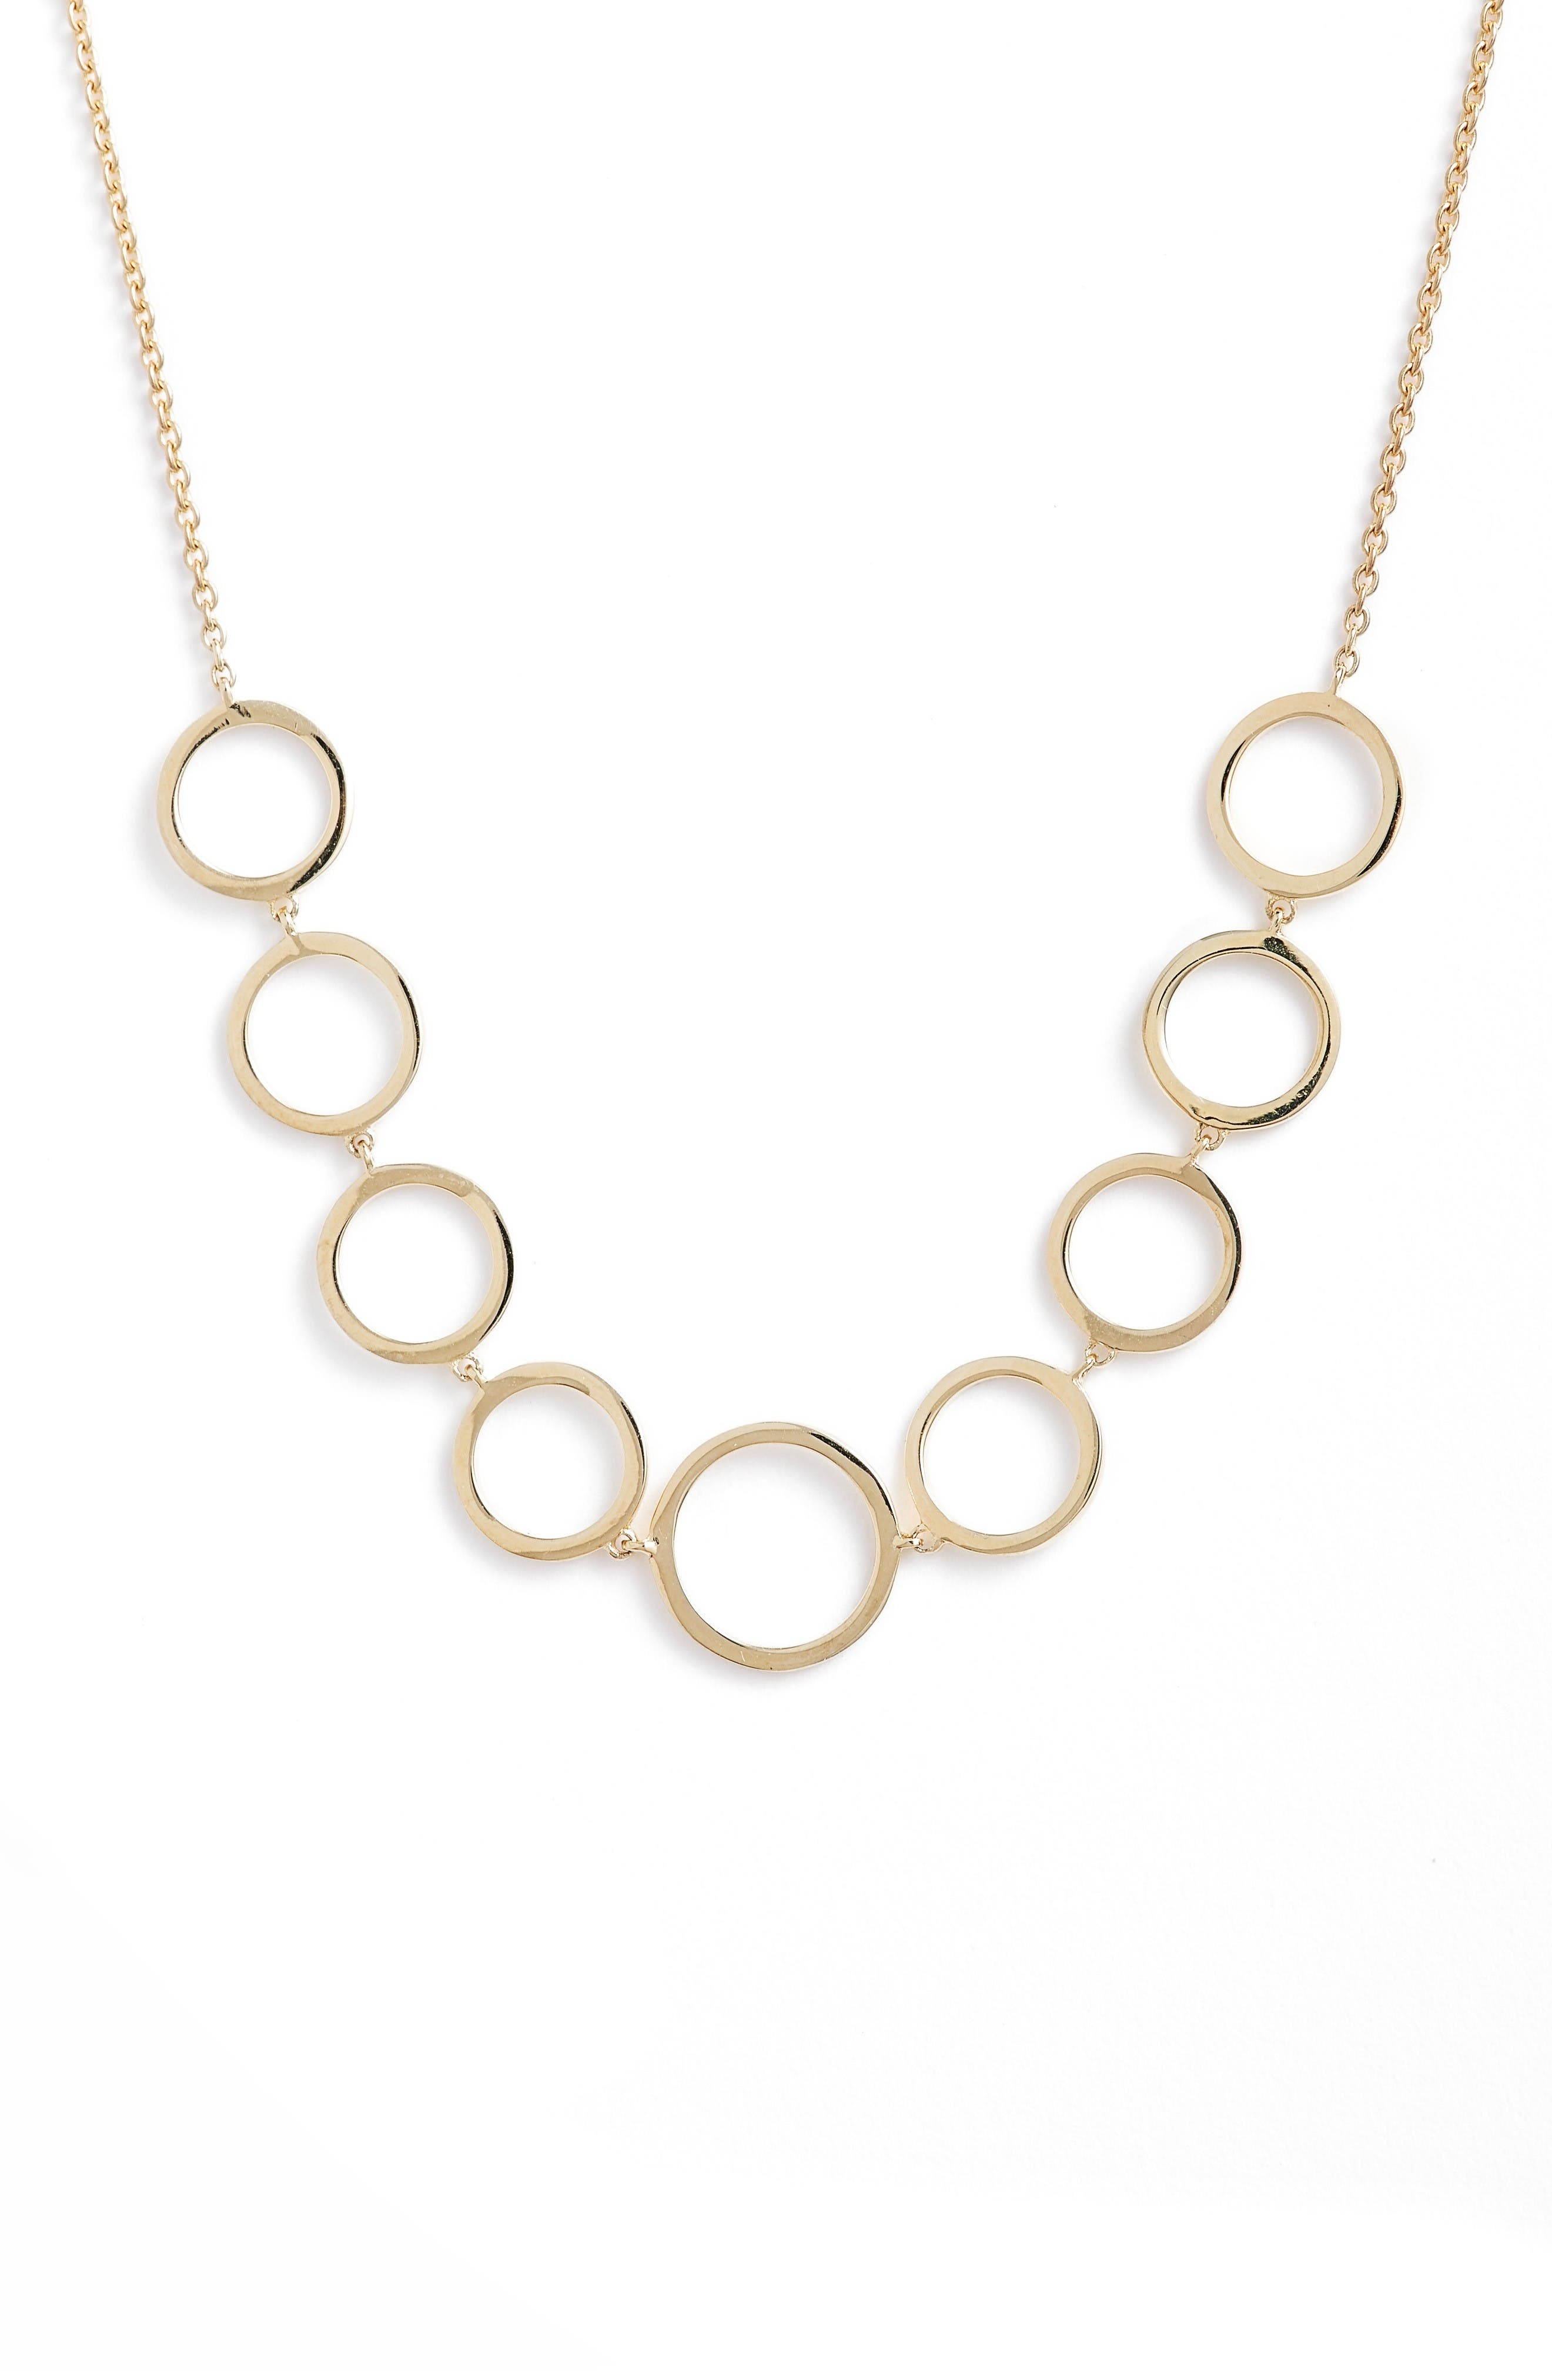 Alternate Image 1 Selected - Bony Levy Geo Circle Necklace (Nordstrom Exclusive)